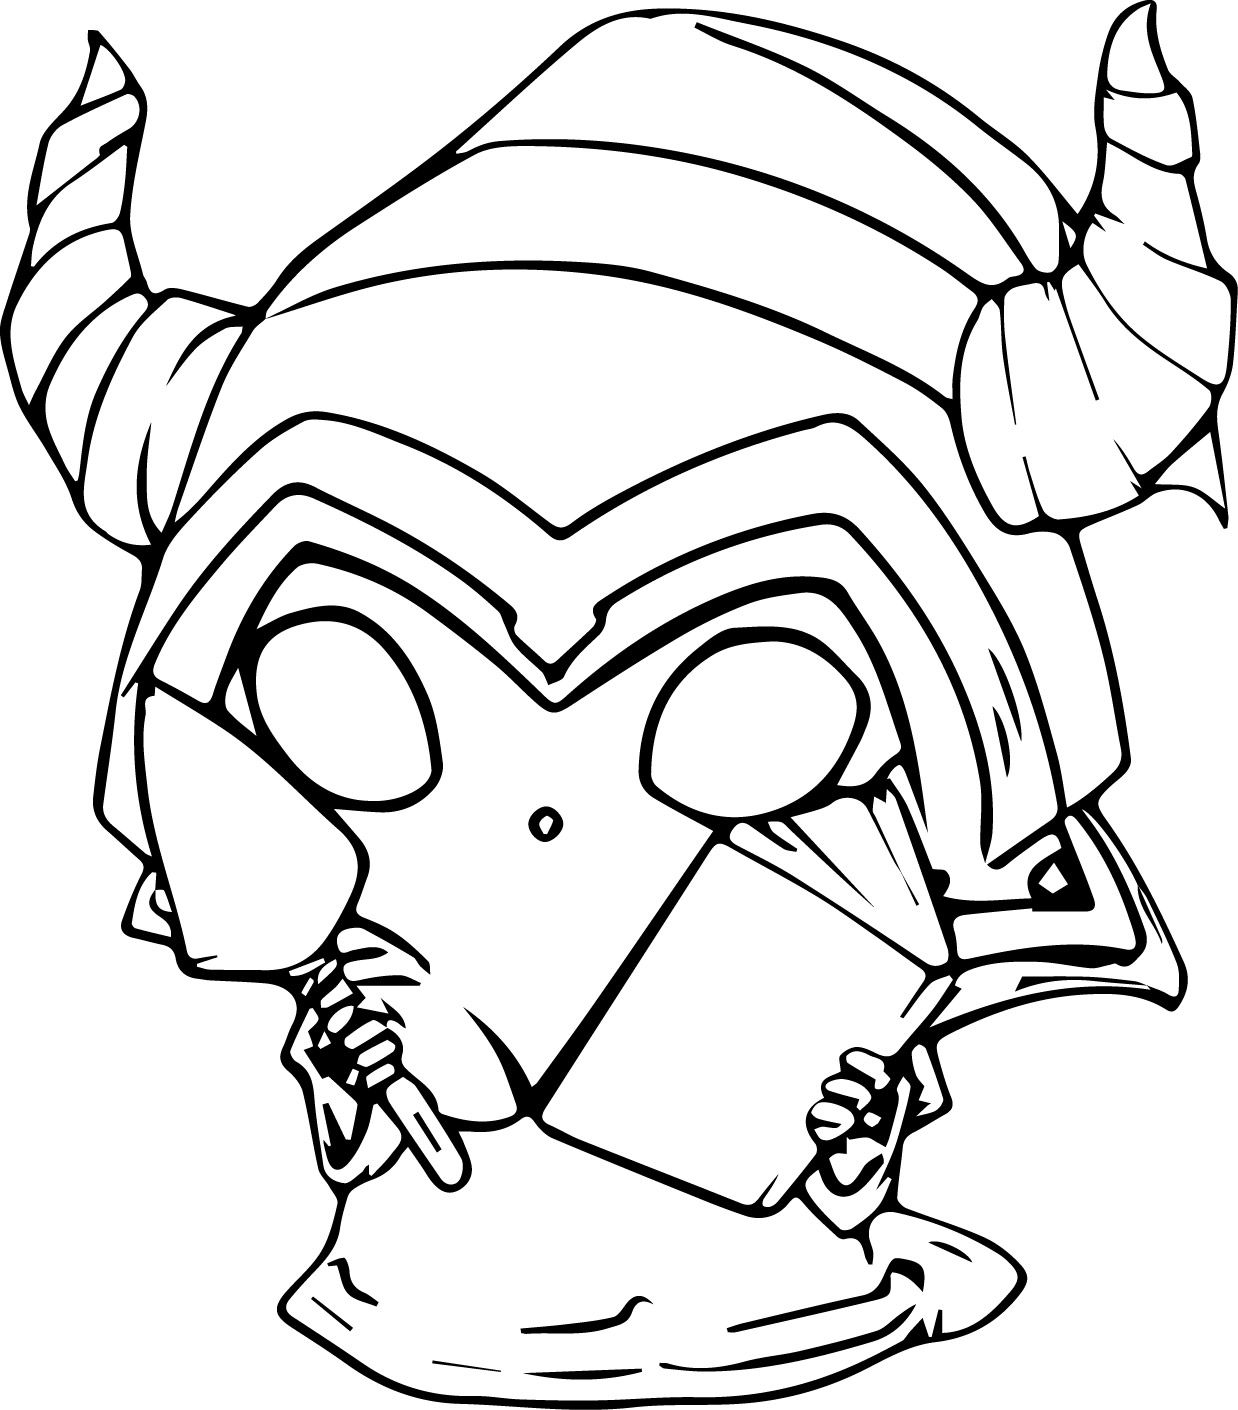 Download cute_minion_halloween_coloring_page | LineArt: HalloweMonsters | Pinterest | Minion halloween ...